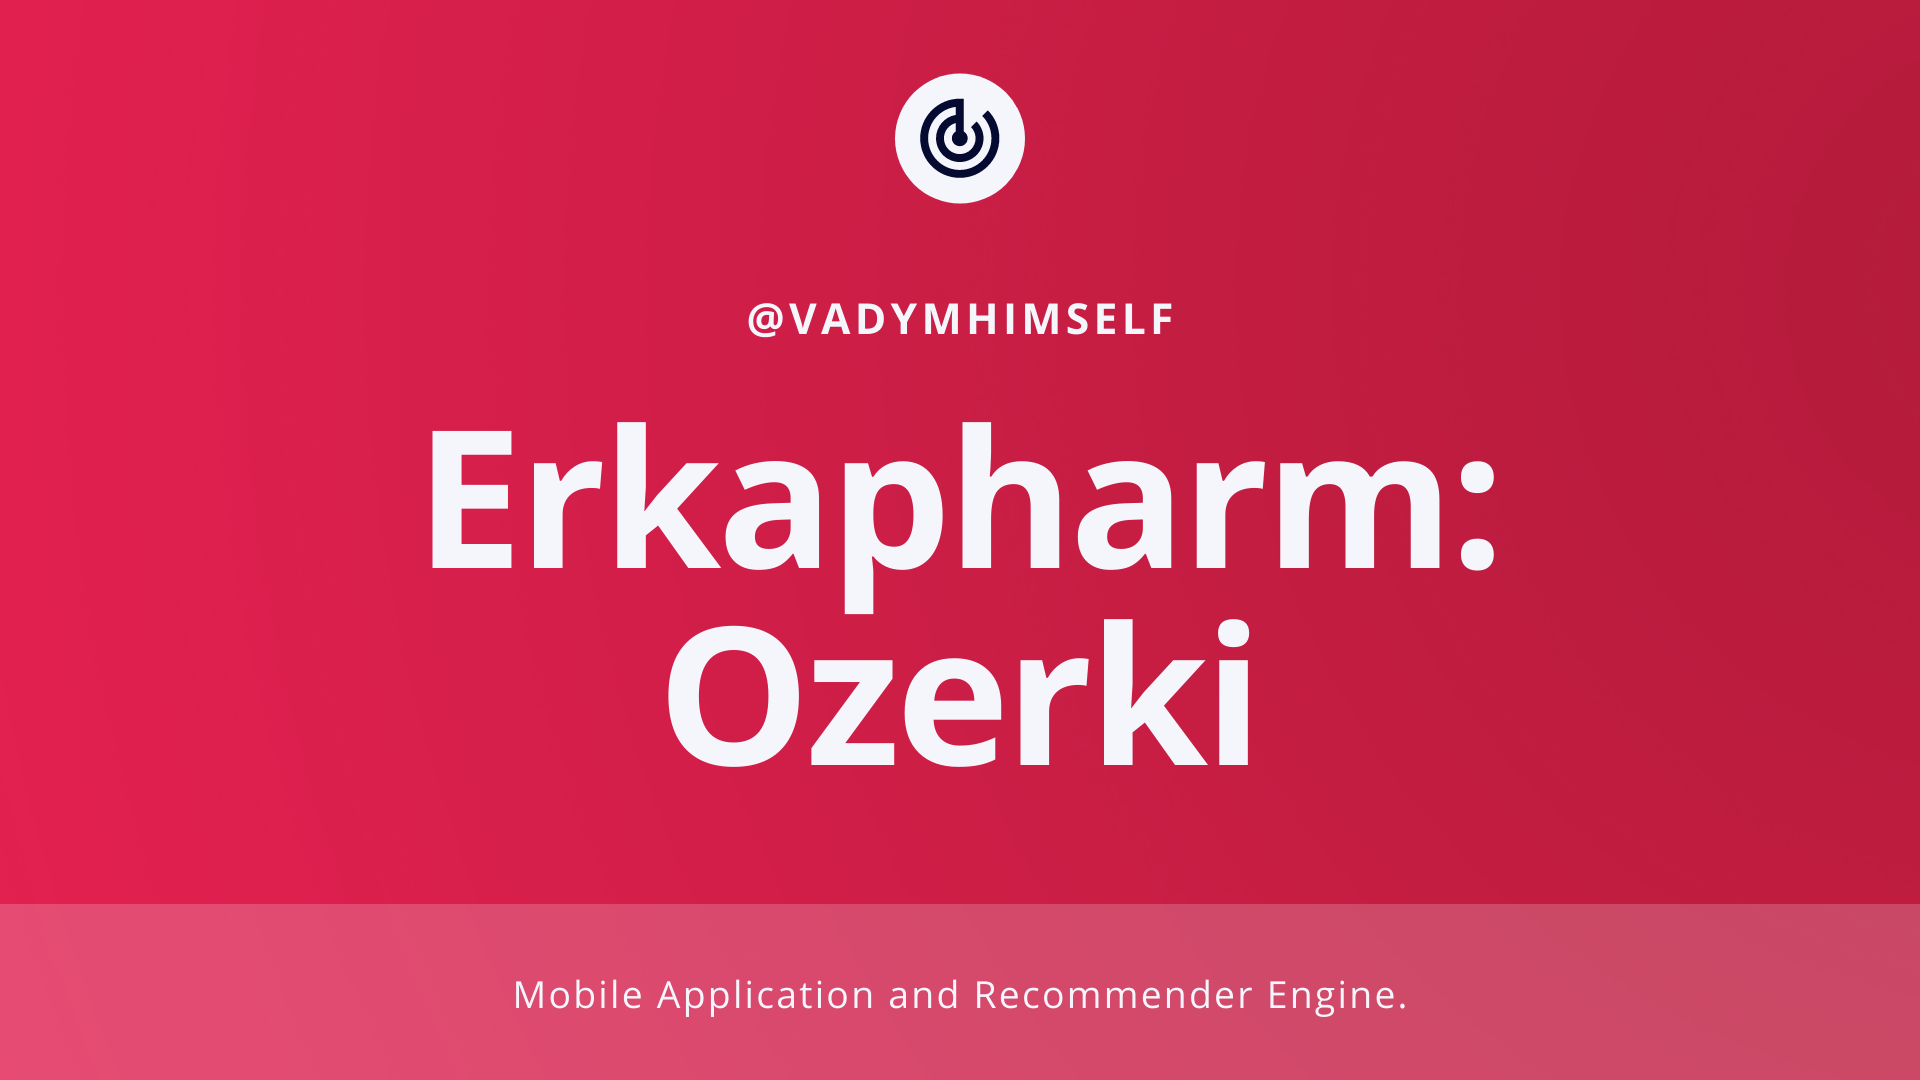 Ozerki: Mobile App and Recommender Engine for the largest pharm-retailer in Russia